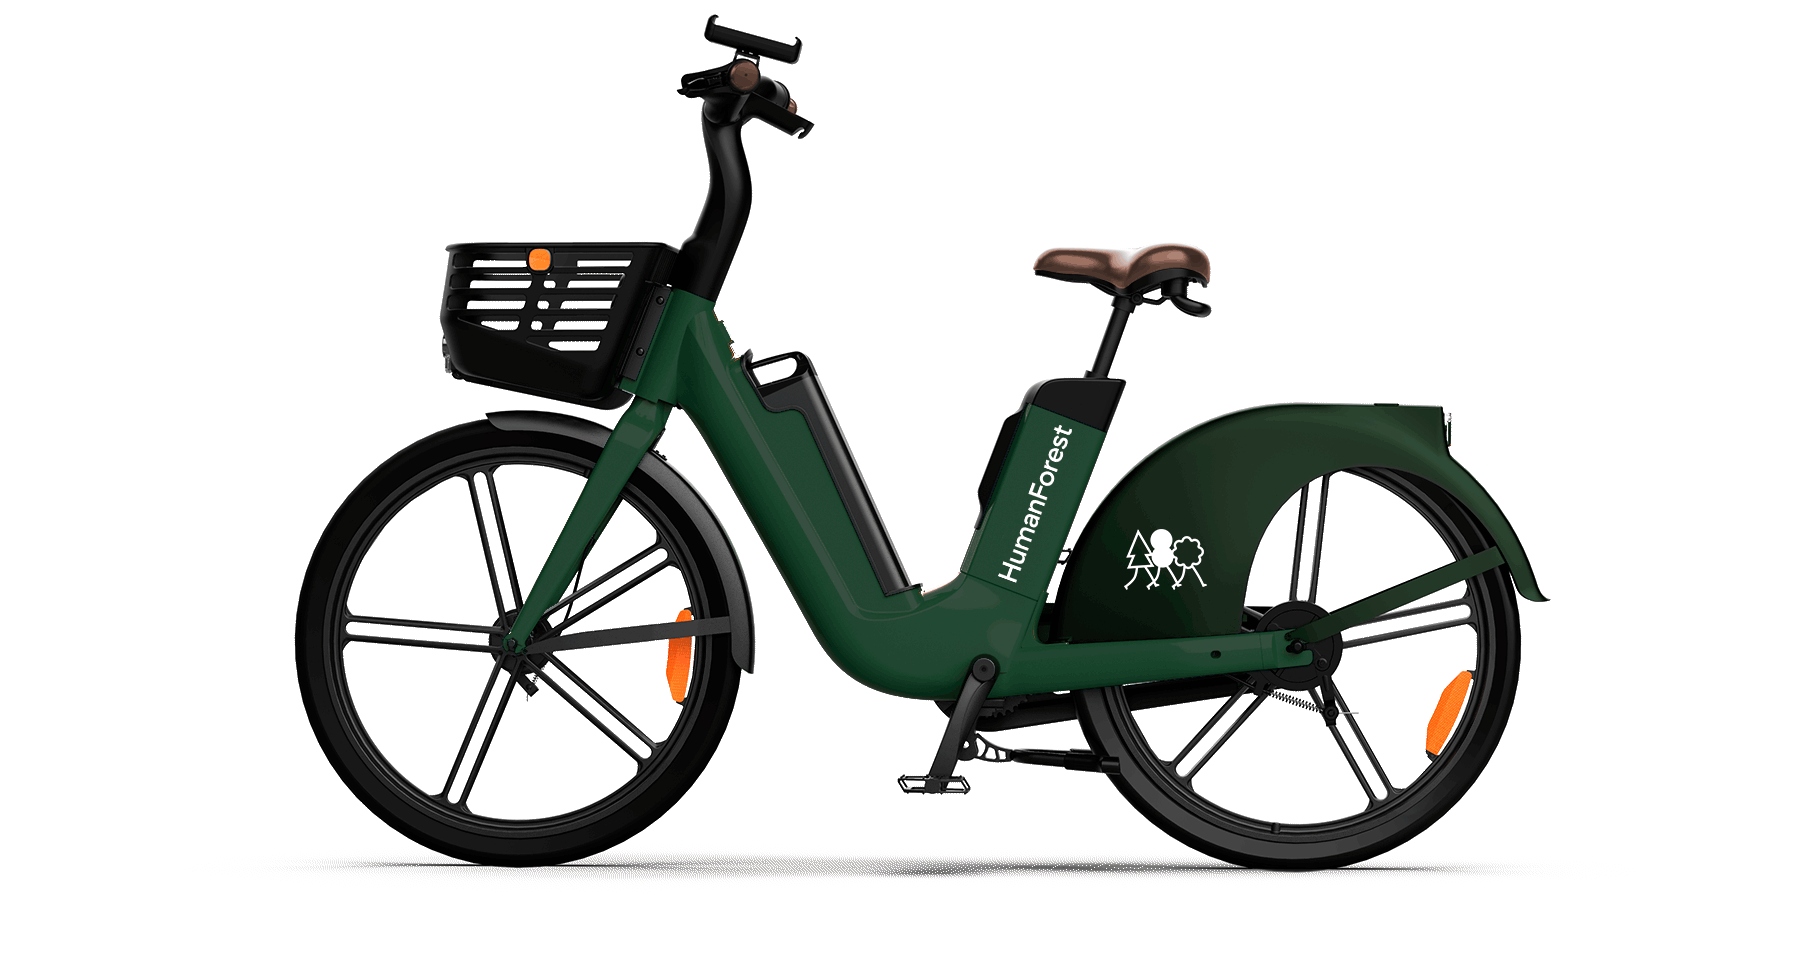 A green electric bike viewed from the side